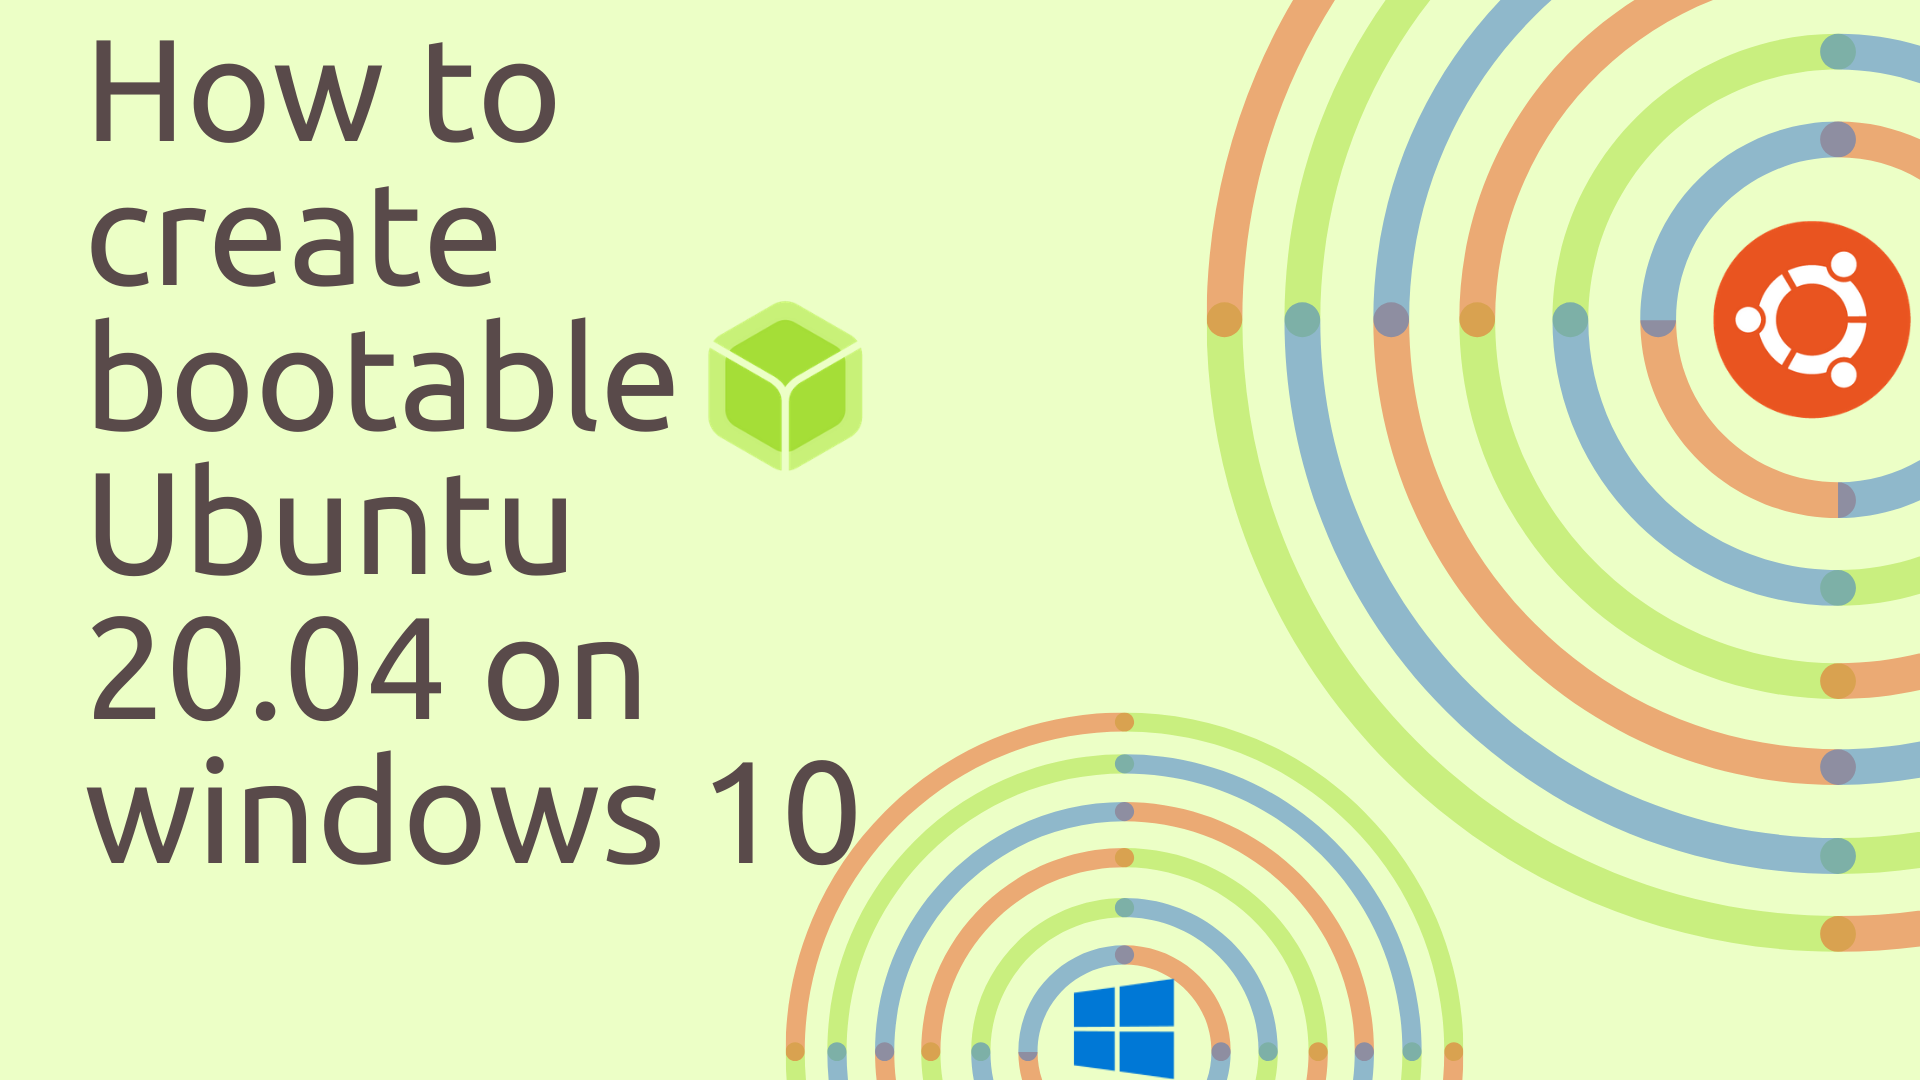 How to create bootable Ubuntu 20.04 on windows 10